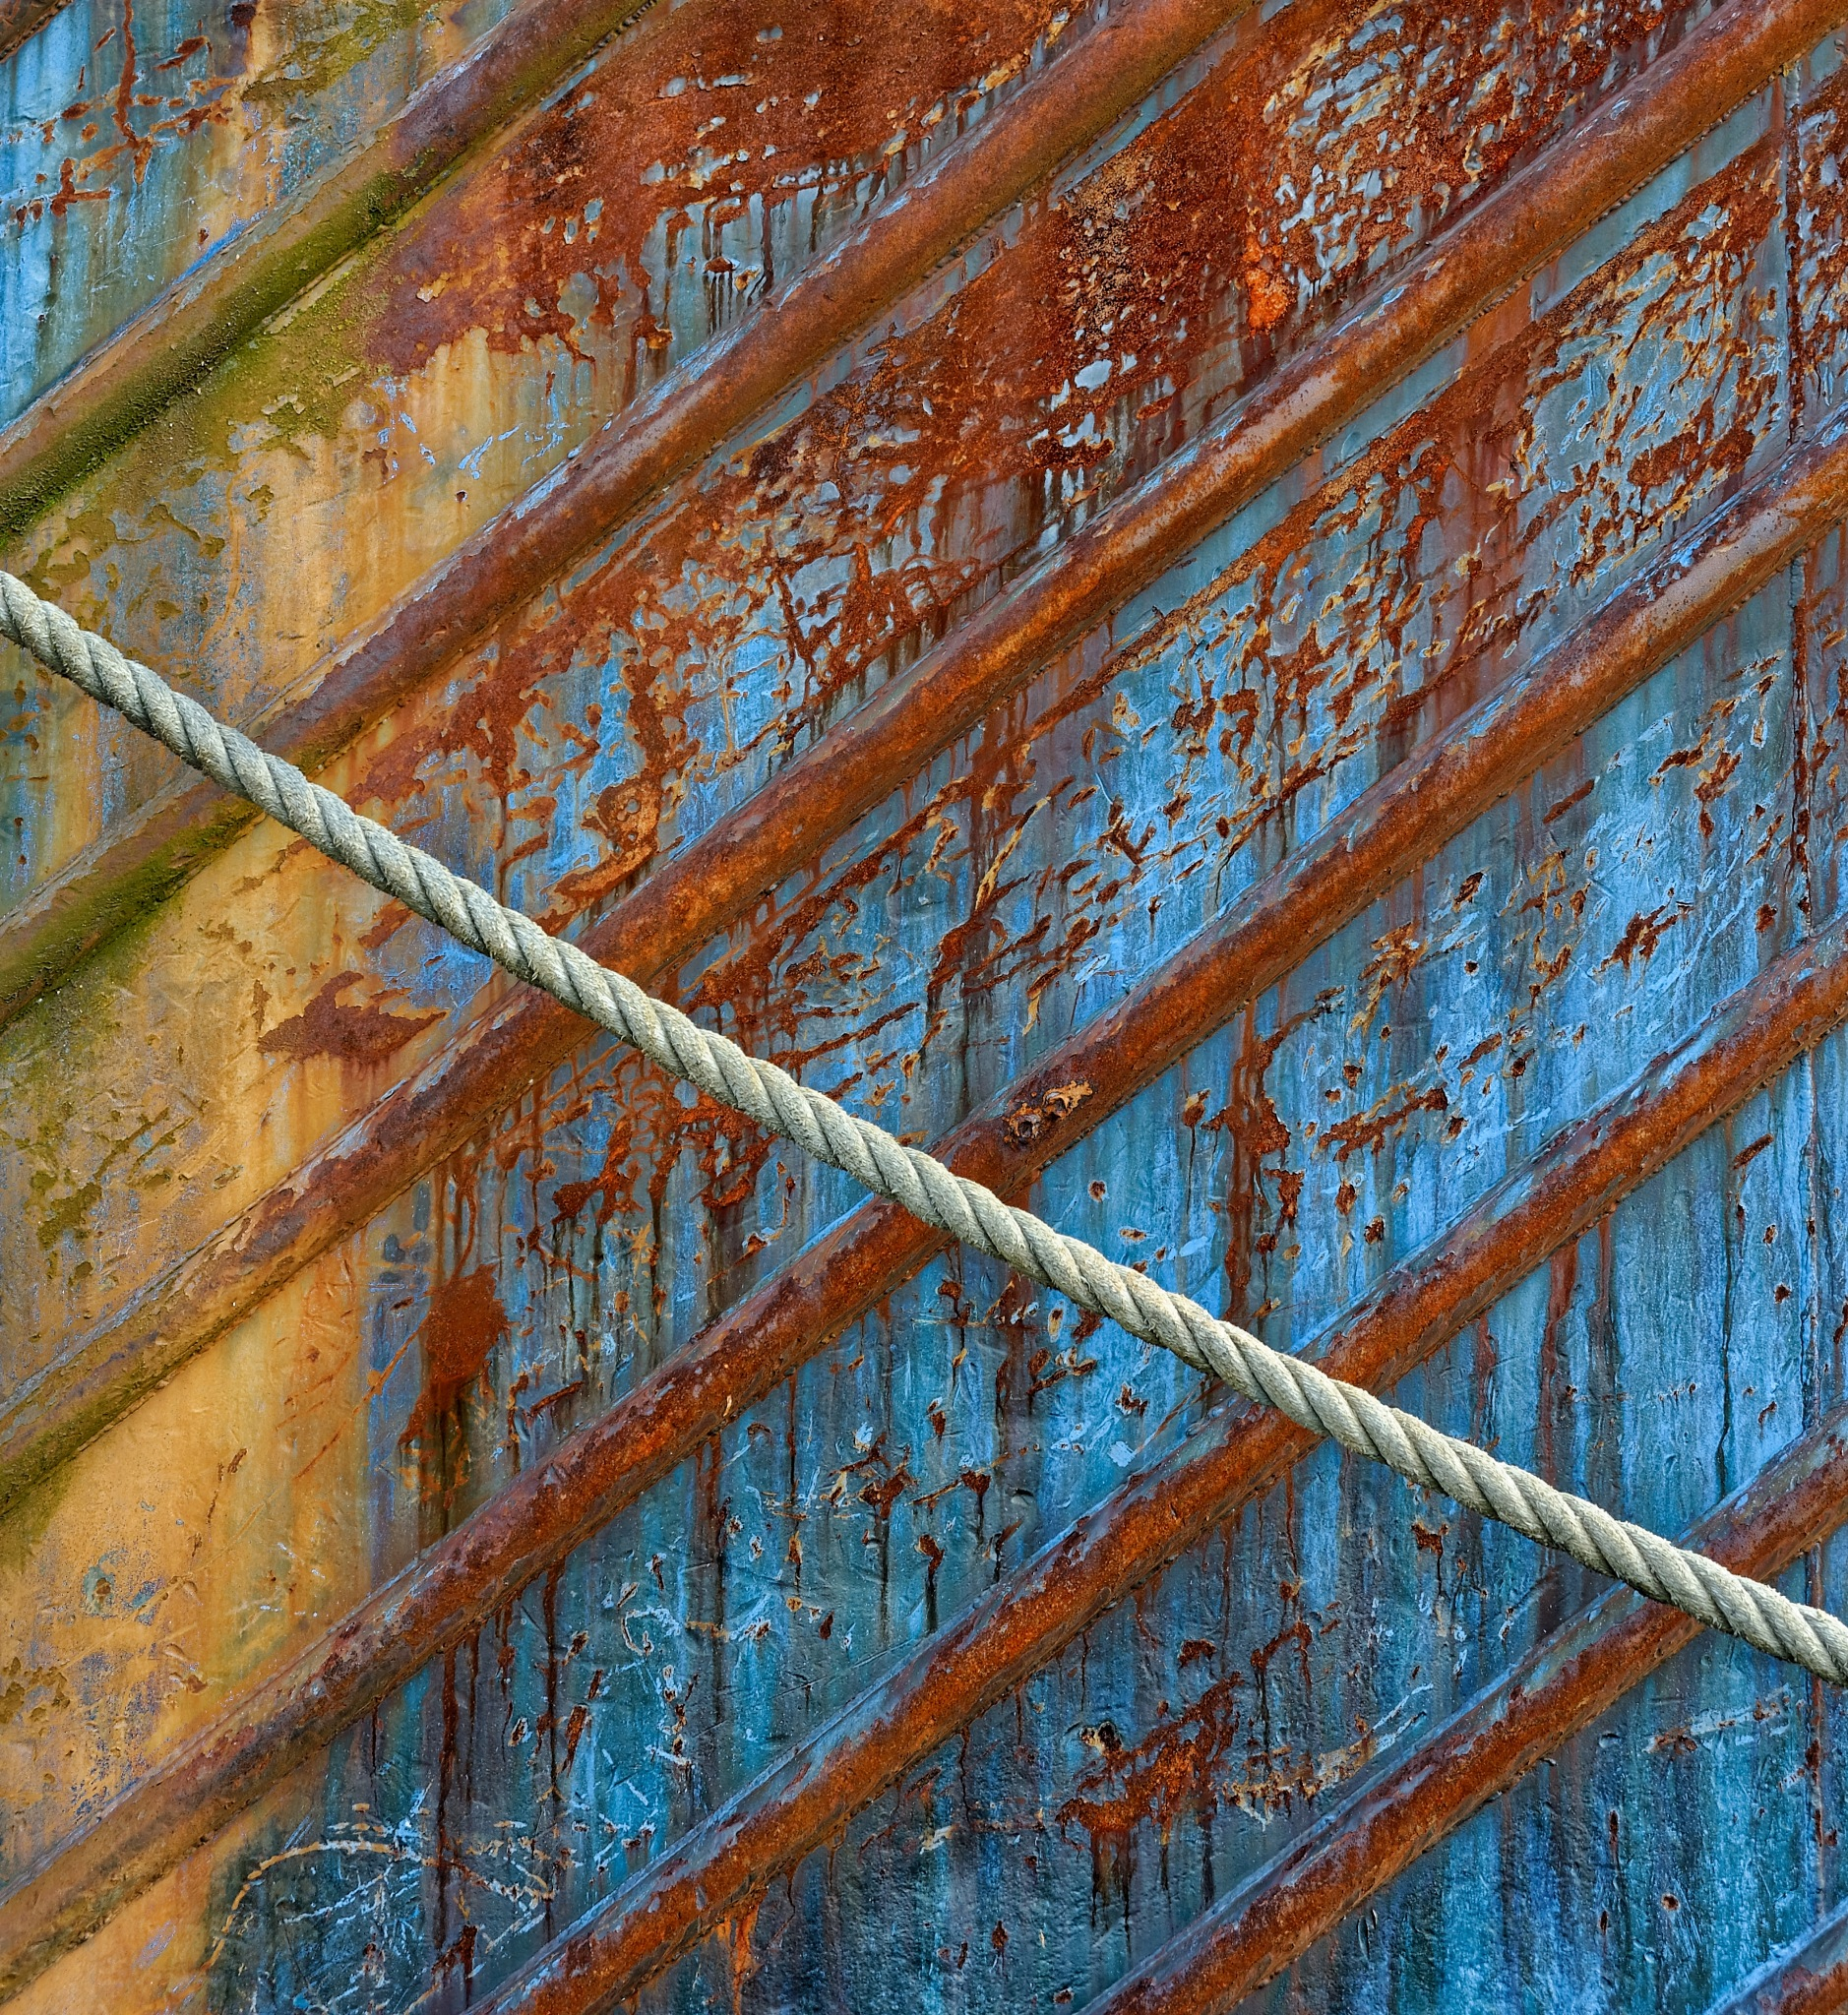 Rope and Rust by Nick Mirkovich